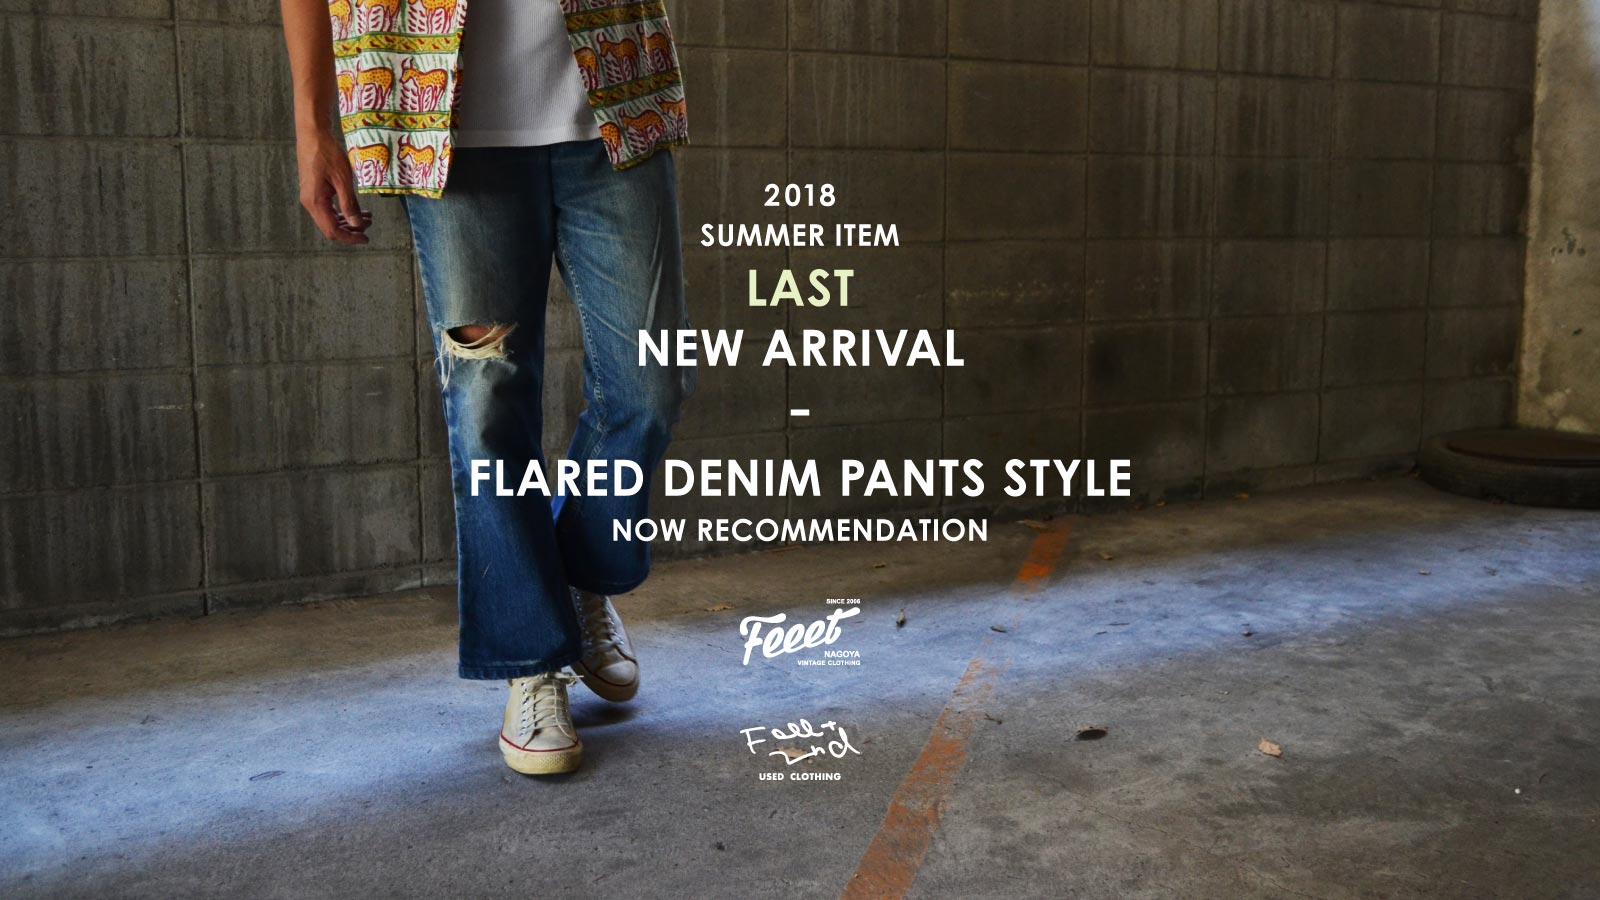 2018 SUMMER ITEM LAST NEW ARRIVAL / FLARED DENIM PANTS STYLE